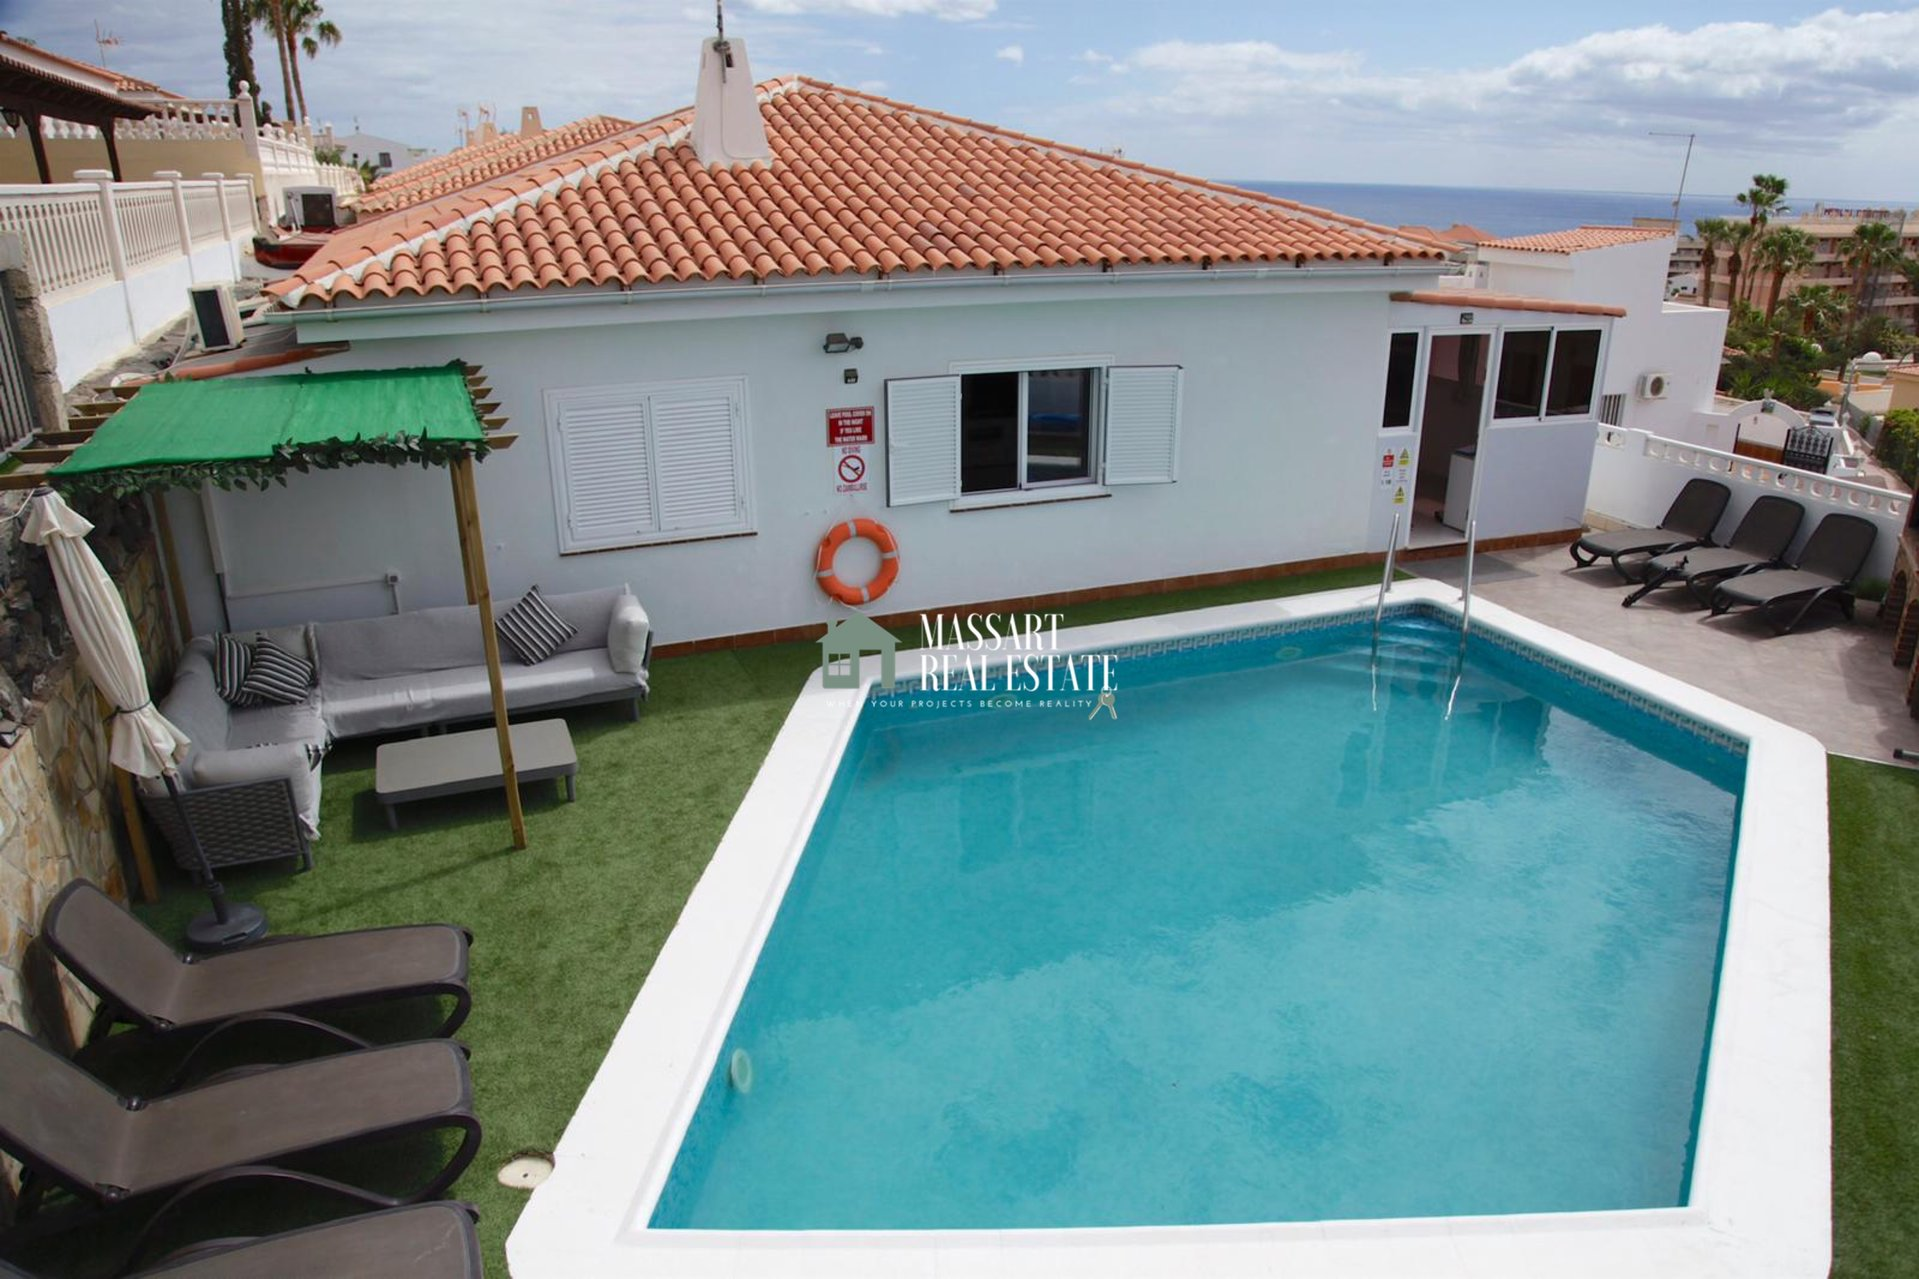 Exclusive villa for rent in the residential complex Sueño Azul (Callao Salvaje) characterized by offering dreamy sea views.